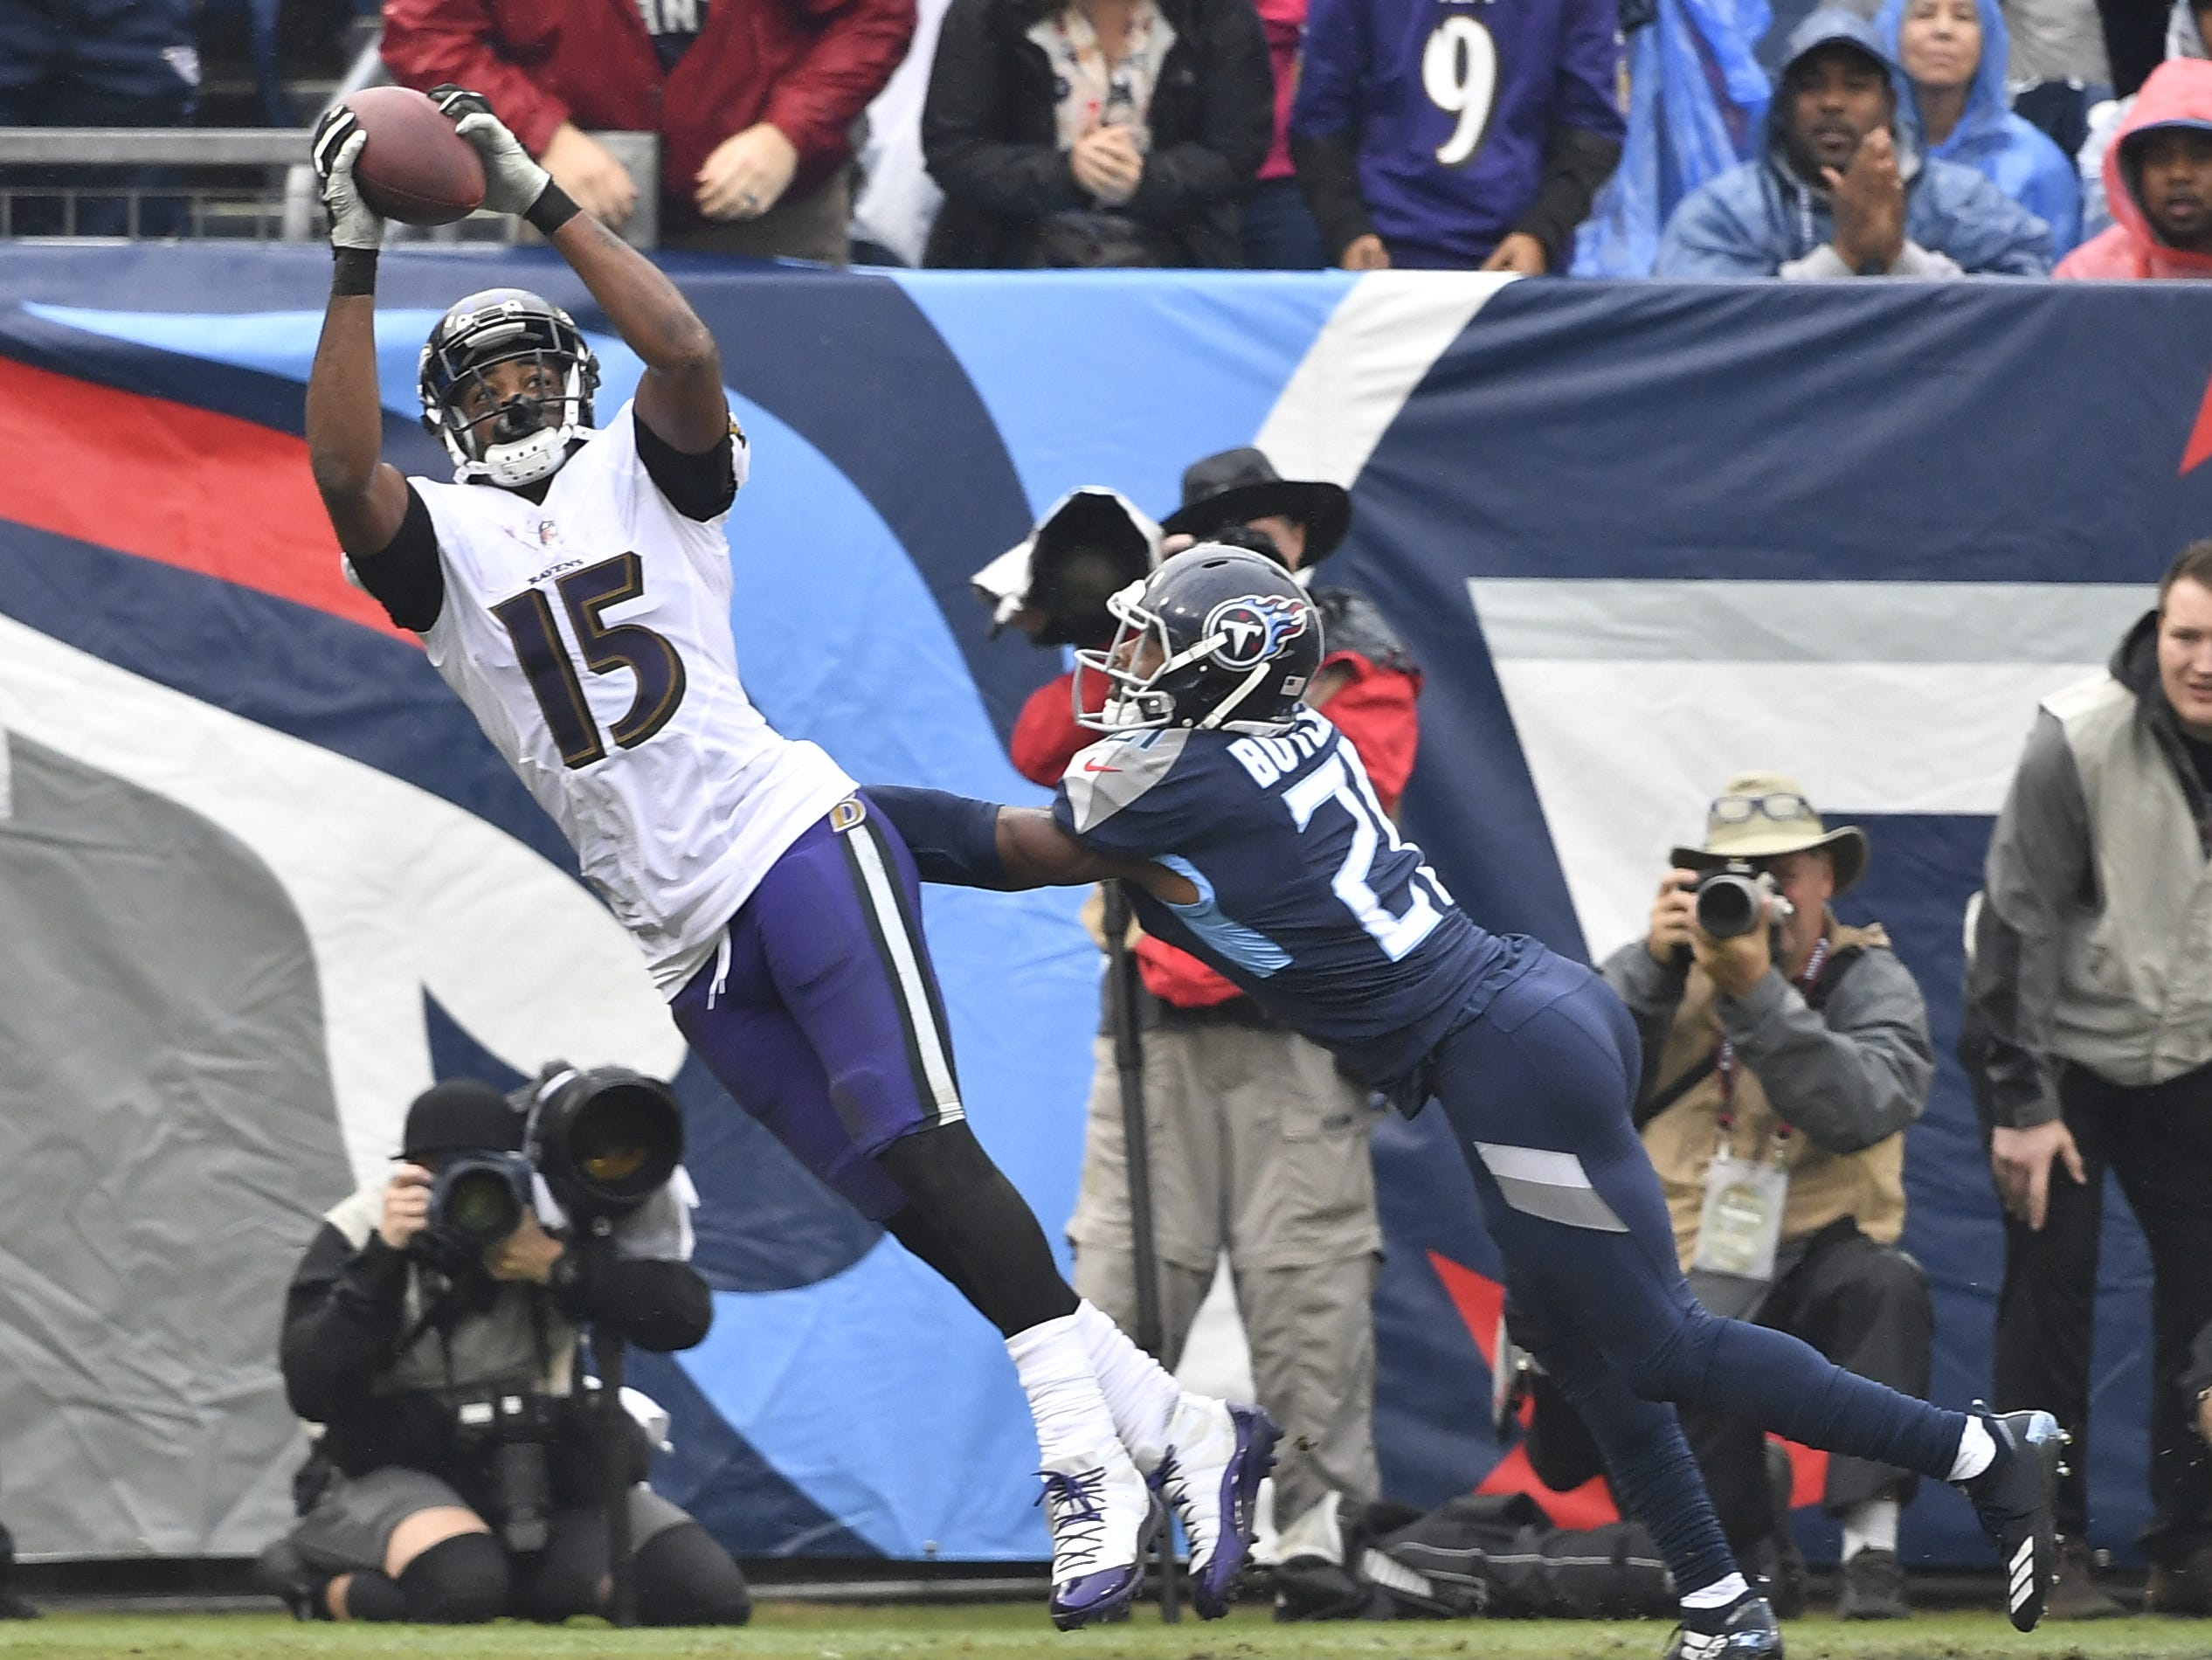 Ravens wide receiver Michael Crabtree (15) pulls in a touchdown catch over Titans cornerback Malcolm Butler (21) in the first quarterat Nissan Stadium Sunday, Oct. 14, 2018, in Nashville, Tenn.